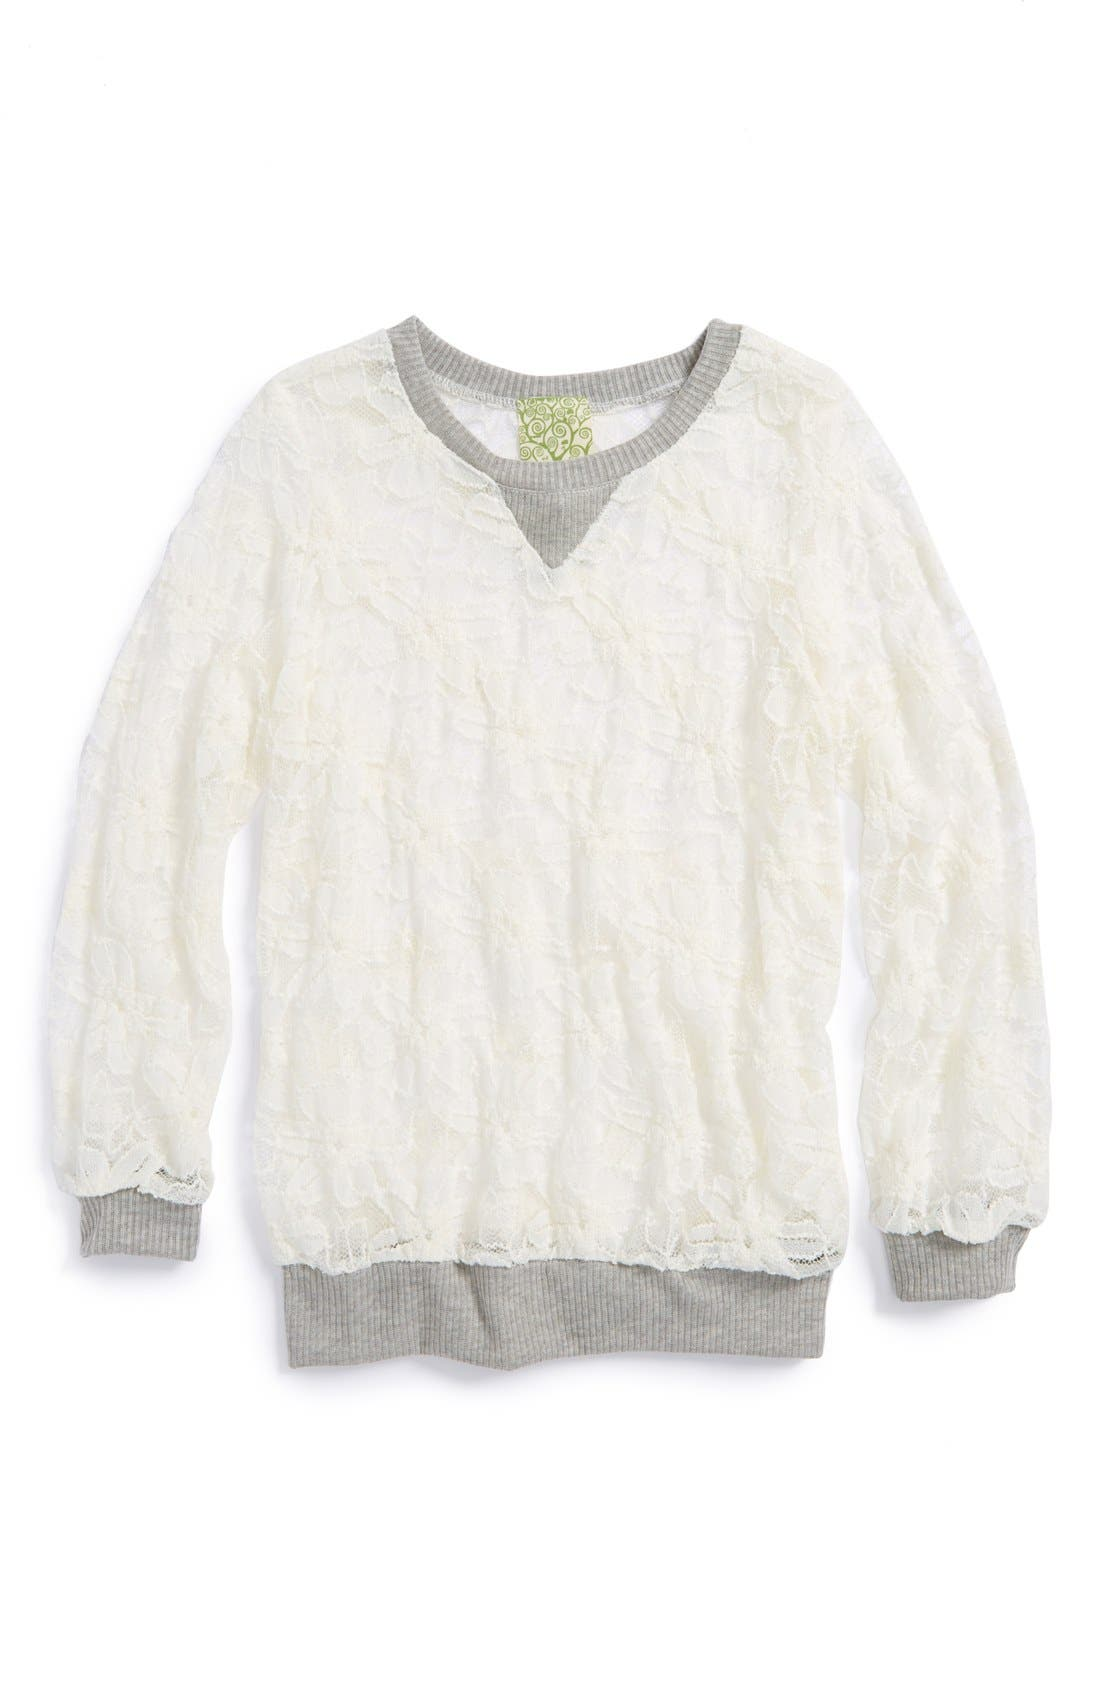 Alternate Image 1 Selected - Kiddo Sheer Floral Lace Sweatshirt (Big Girls)